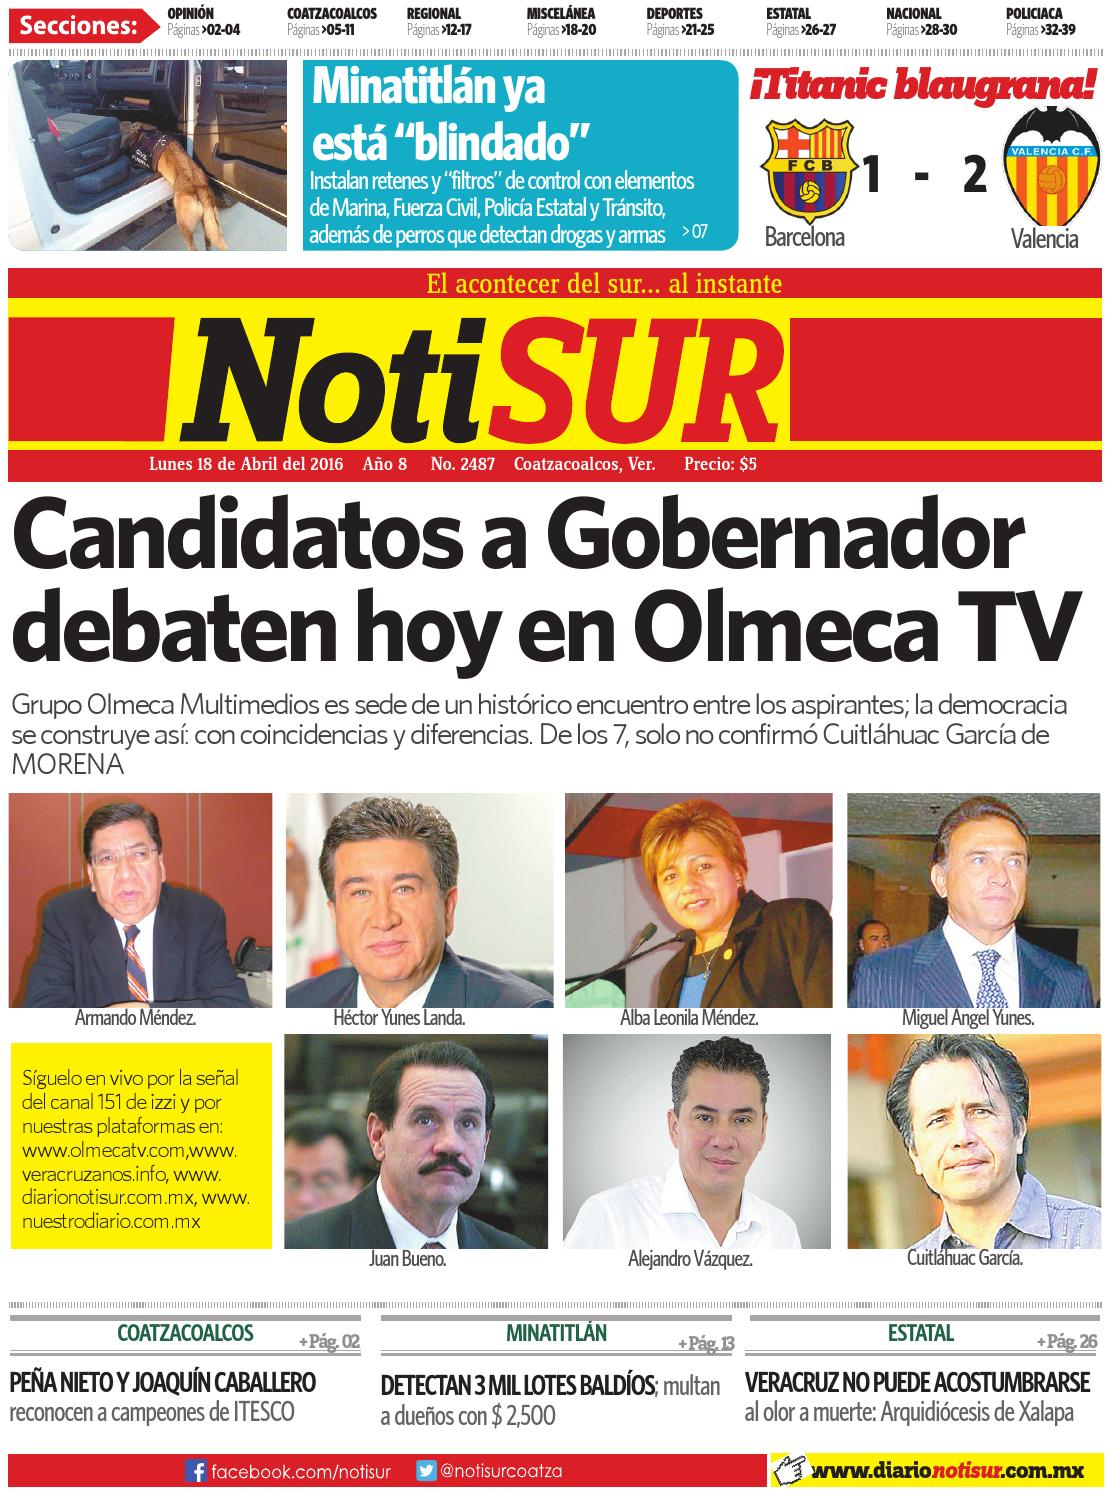 407aedfd30 NotiSUR 18 de abril 2016 by Diario NotiSUR Coatzacoalcos 2015